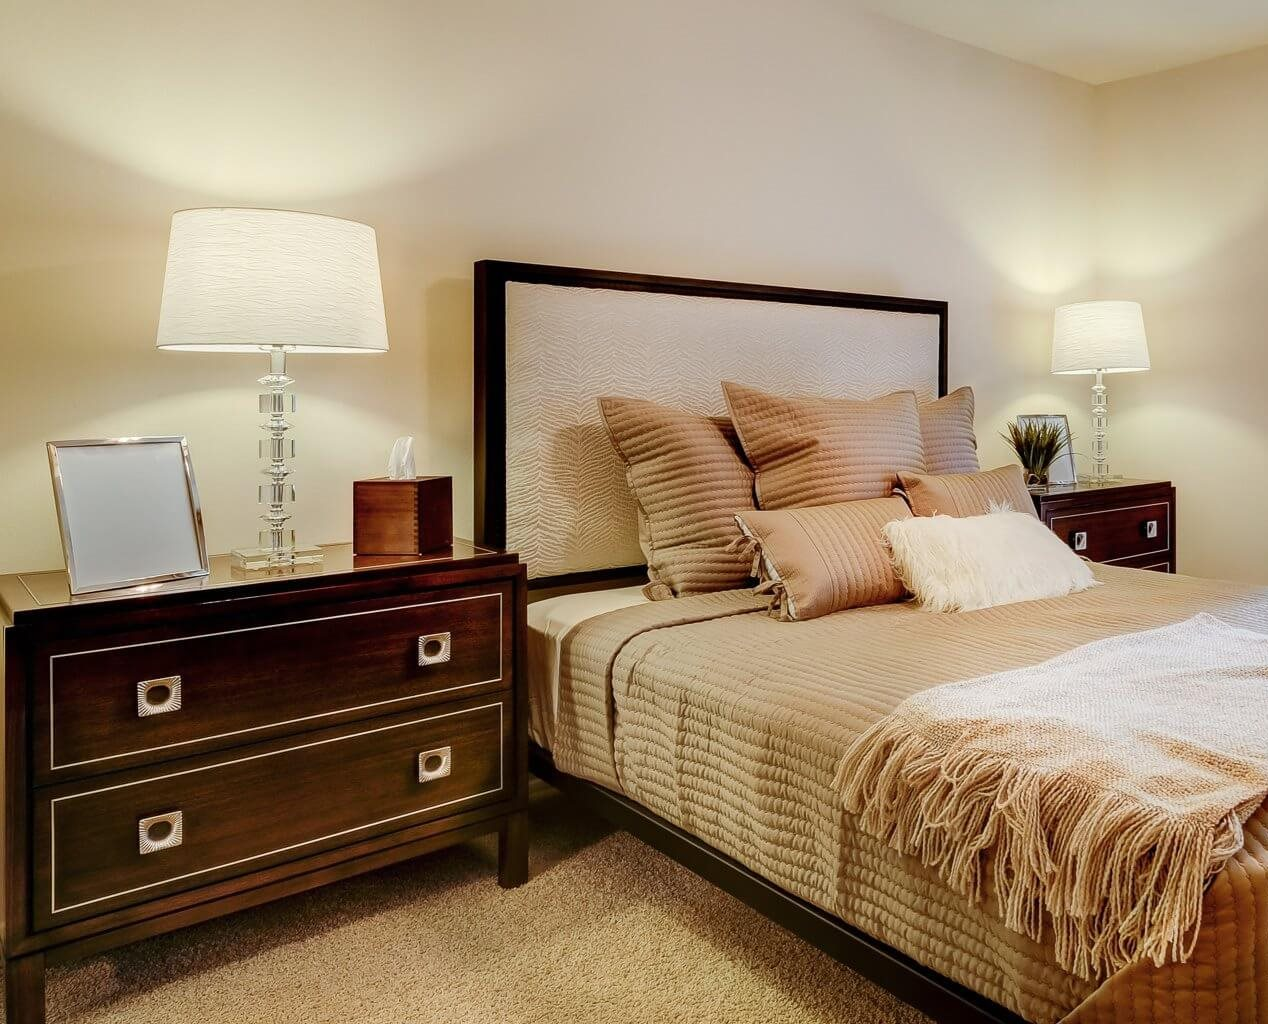 Bedroom in Dover floorplan at The Villages at General Grant Apartments in Affton, MO.